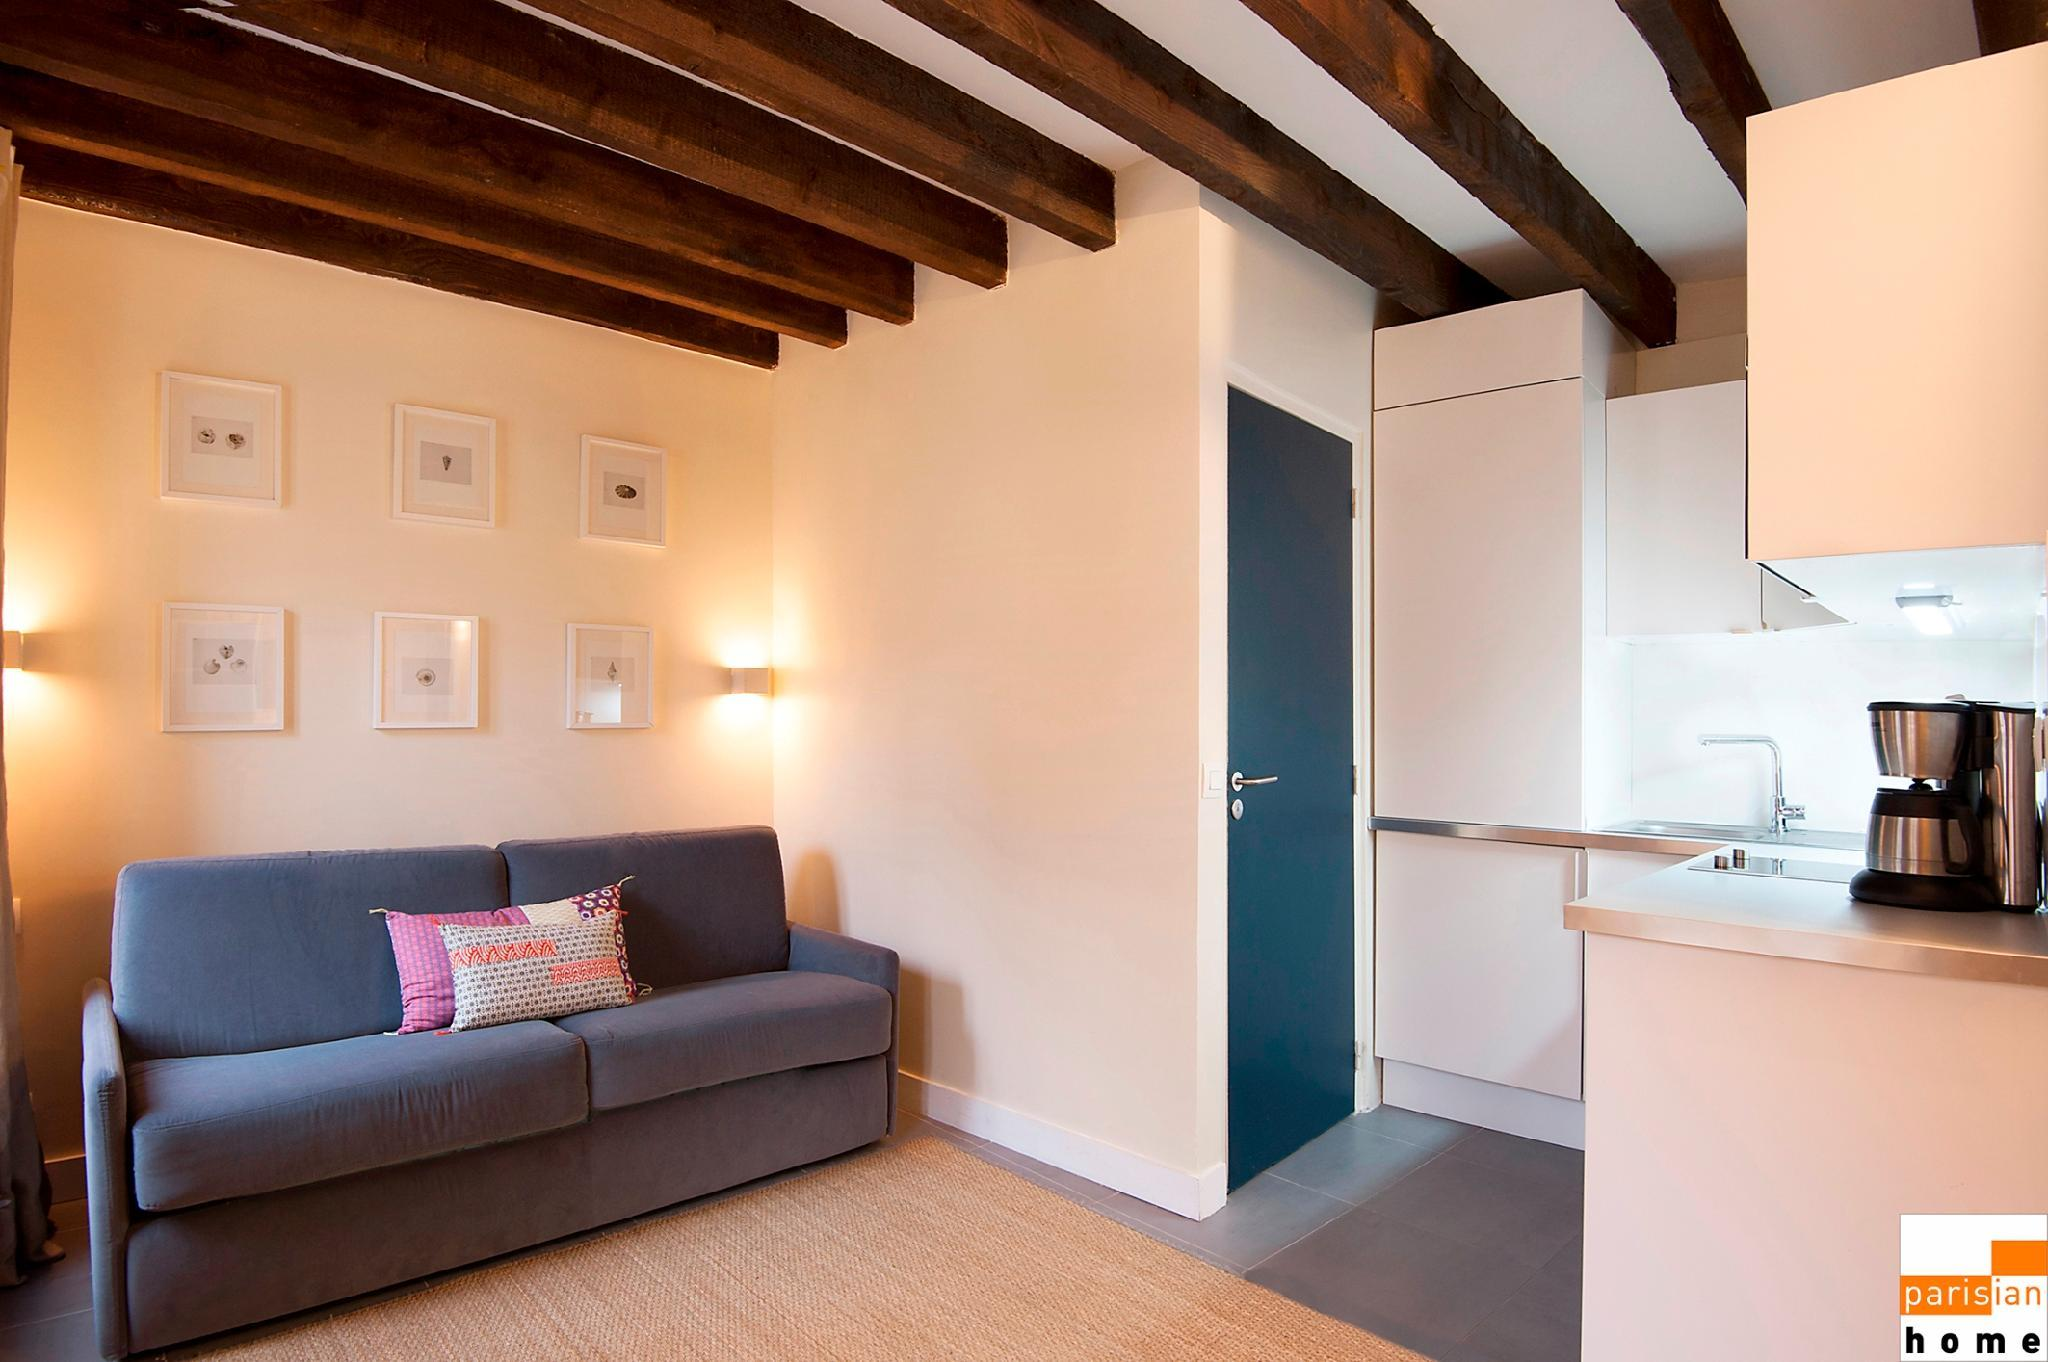 S02448 - Comfortable studio flat for 2 people near Les Halles